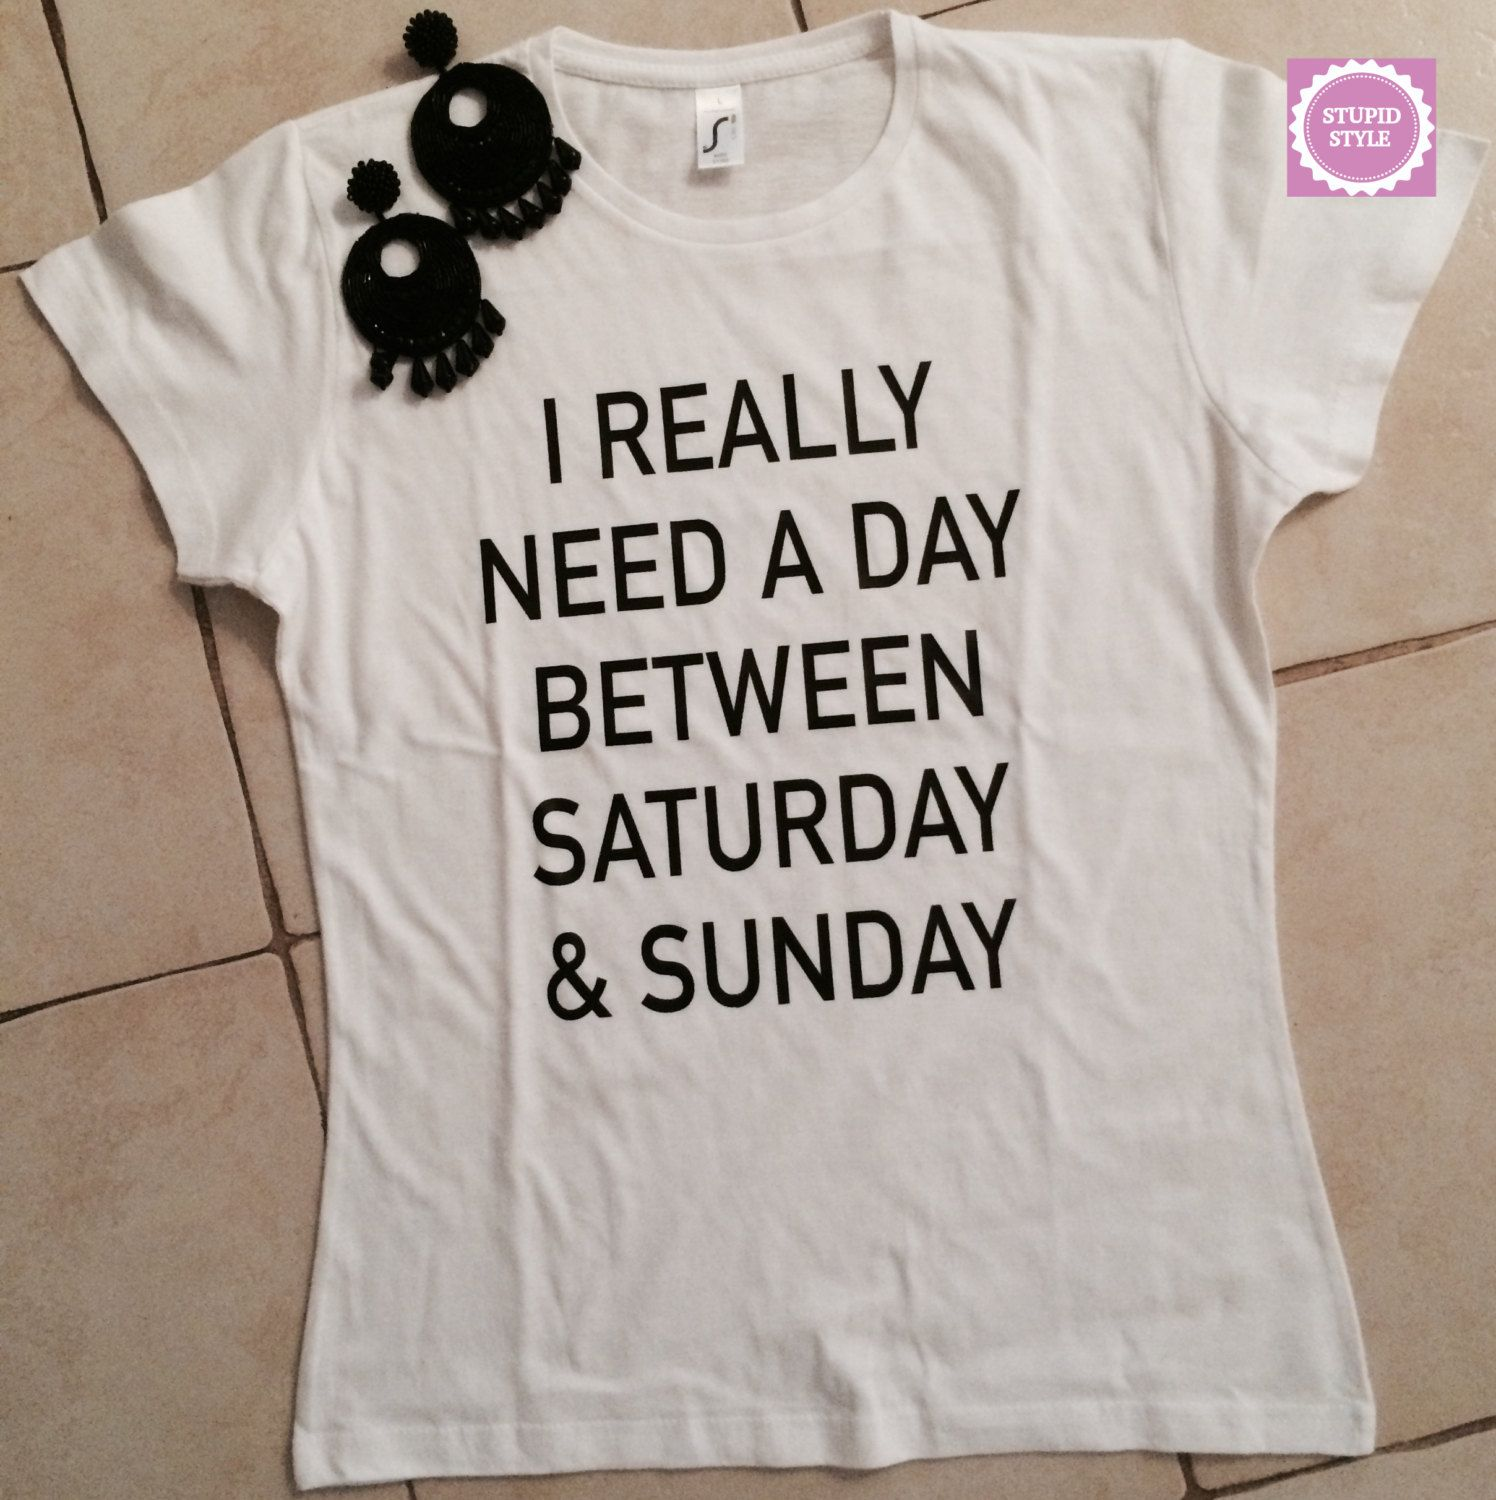 b23e1cfcd cool tee shirt sayings for teen girls | ... shirt womens girls tumblr funny  teens teenagers quotes slogan fun